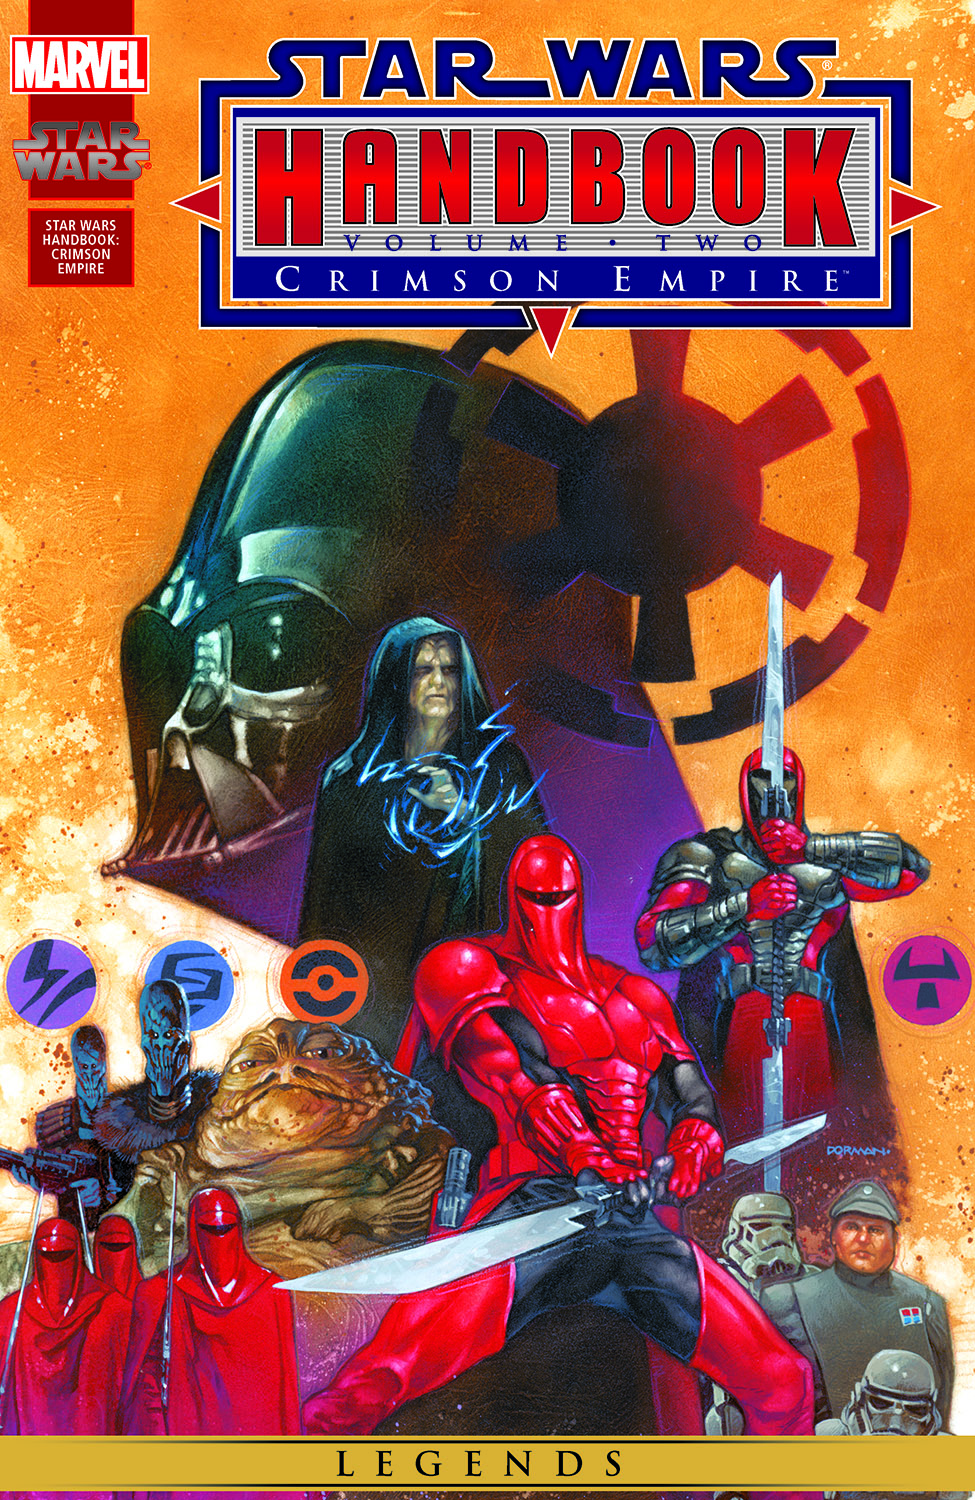 Star Wars Handbook 2: Crimson Empire (1998) #2